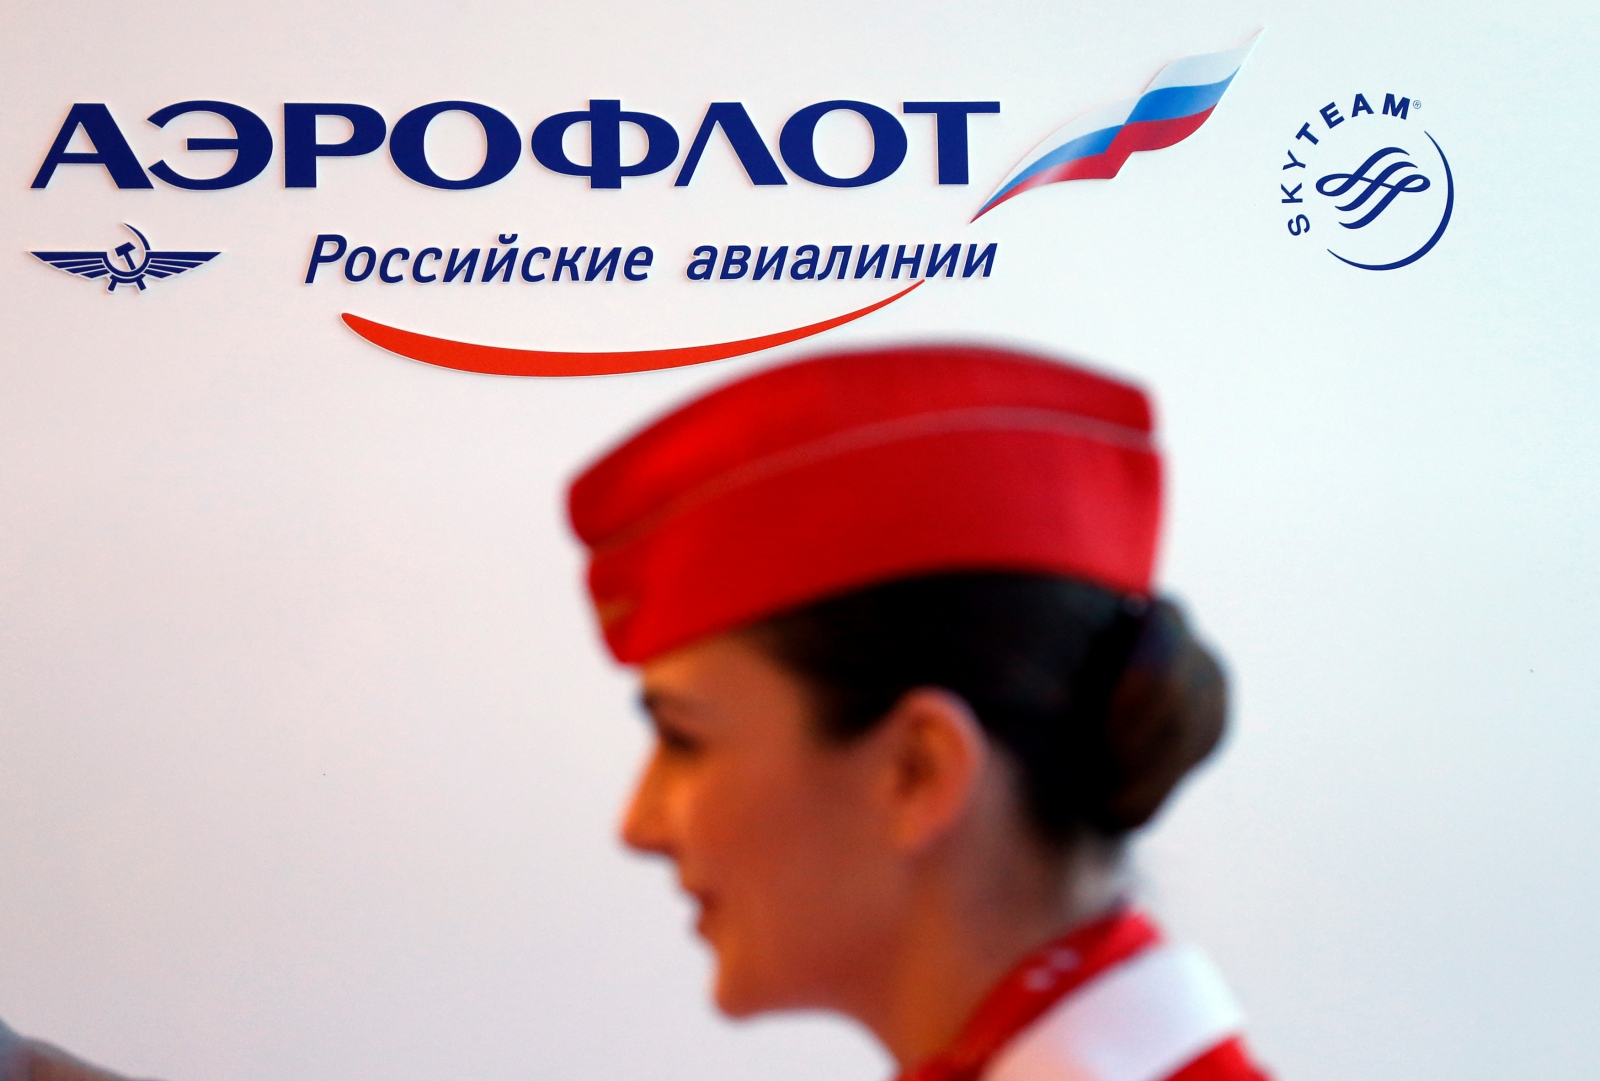 Russian airline Aeroflot claims overweight cabin crew put passengers at risk